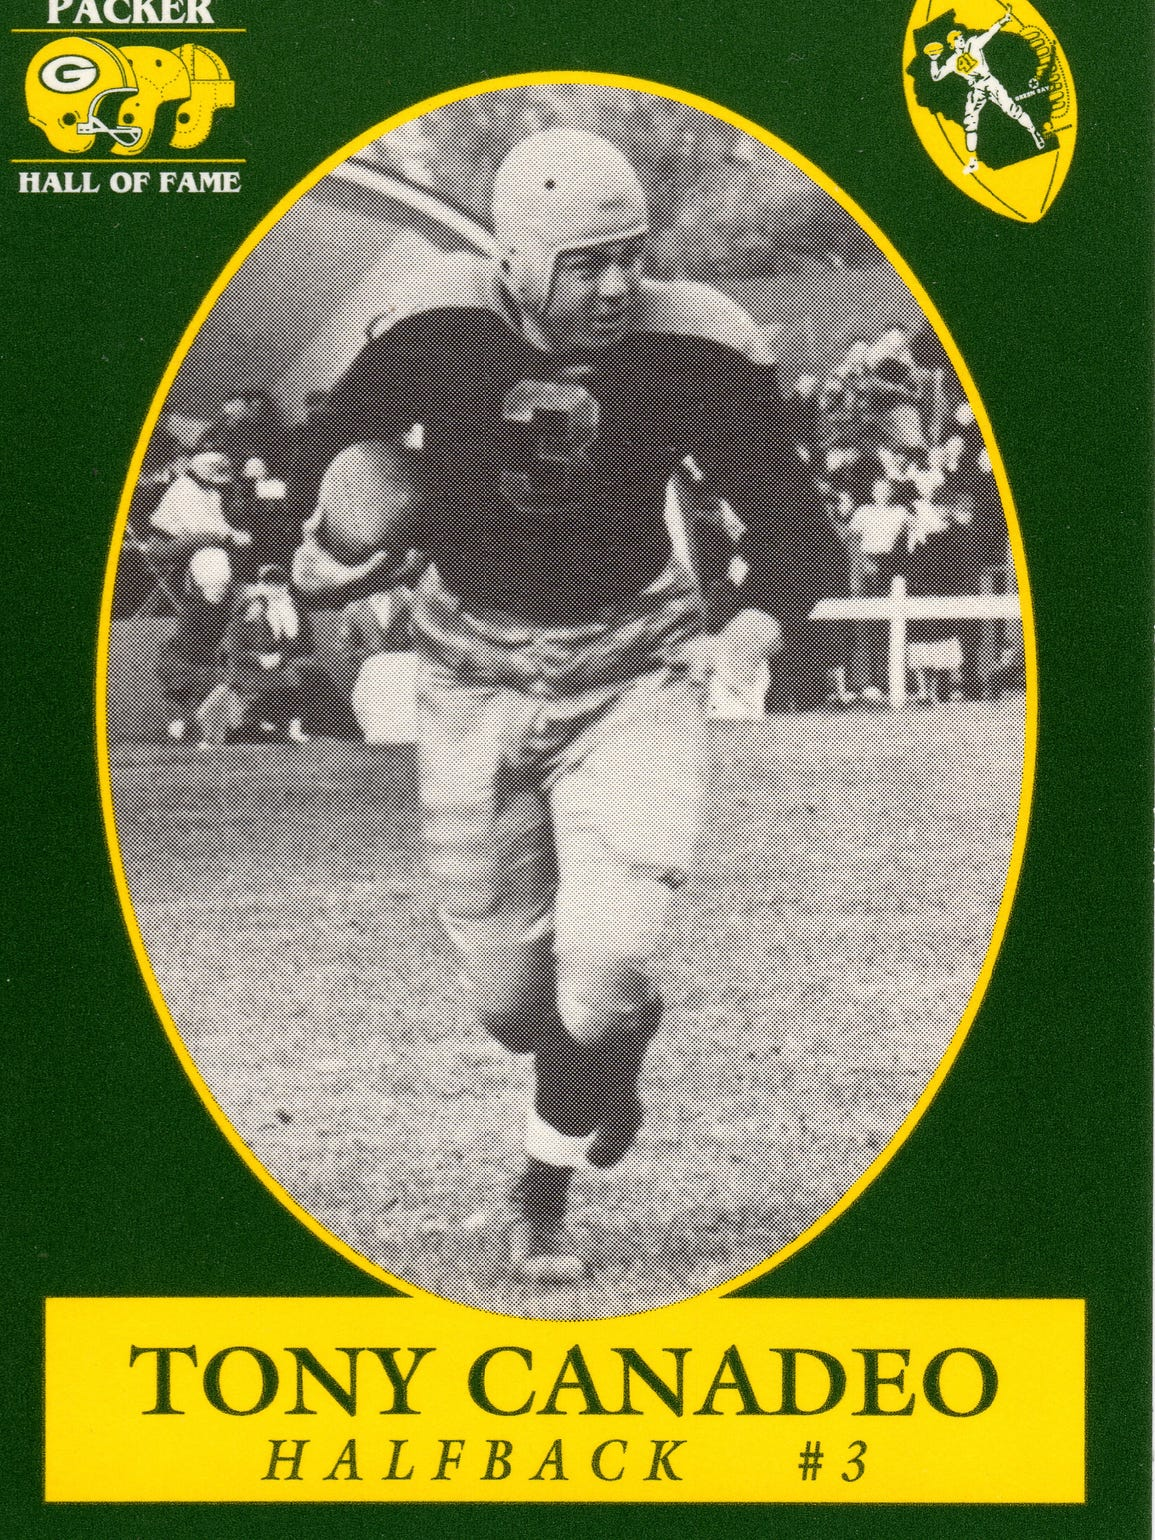 Green Bay Packers Hall of Fame player Tony Canadeo played at Gonzaga before the West Coast school discontinued football after World War II.